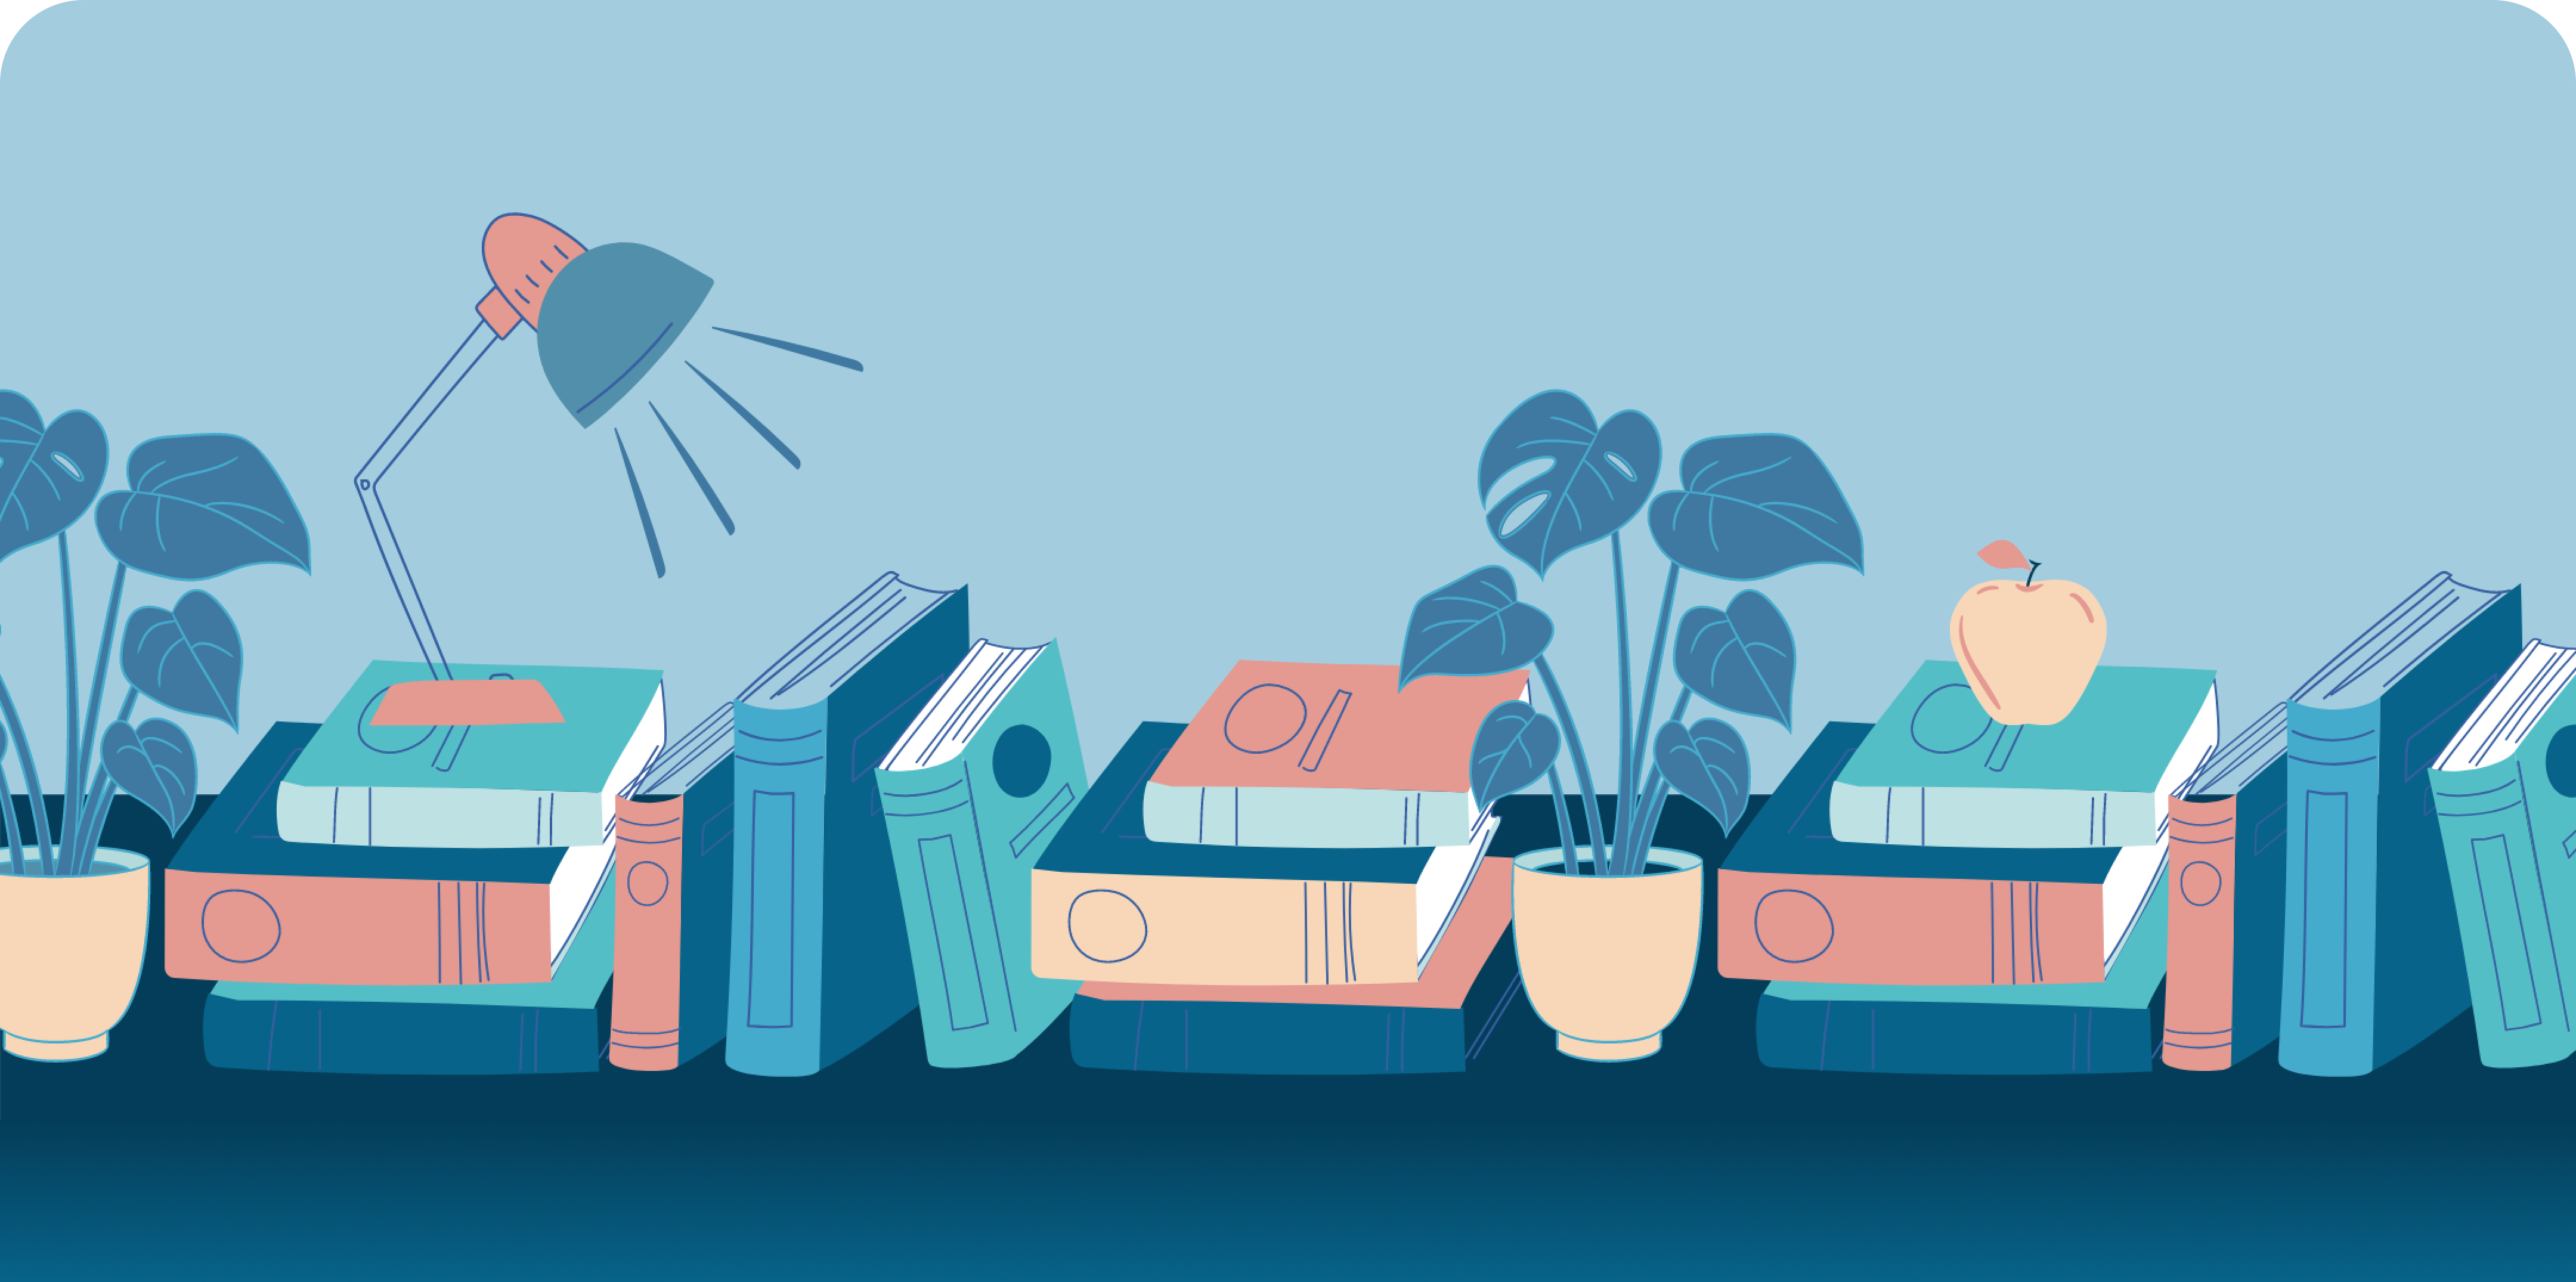 A table with books, plants, and an apple.